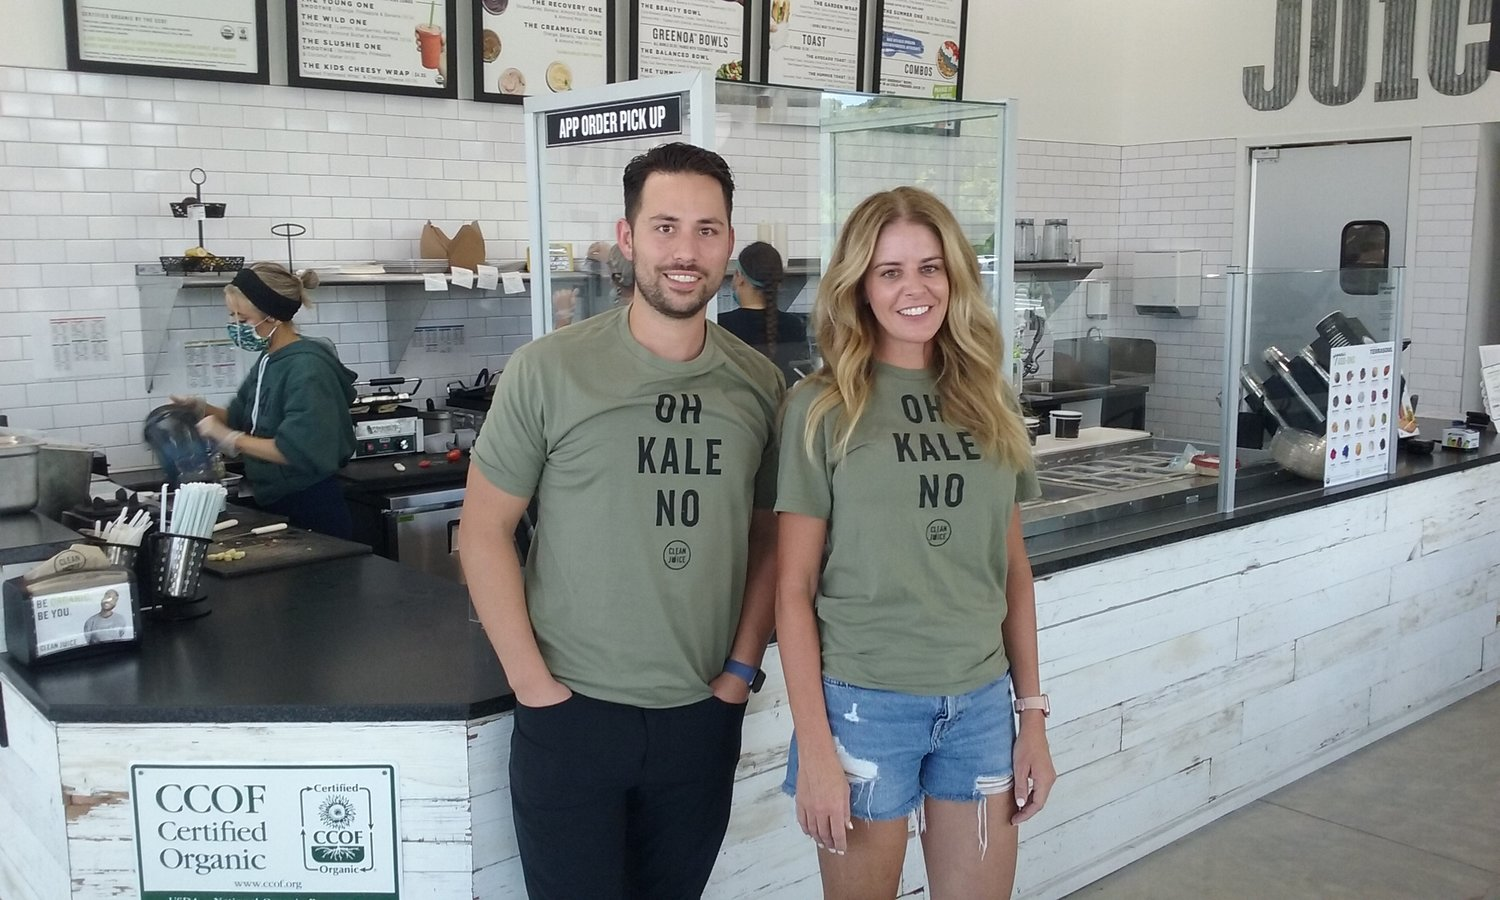 Sam and Angie Lacey recently opened their Clean Juice franchise in Nocatee and the response from the public has been strong.